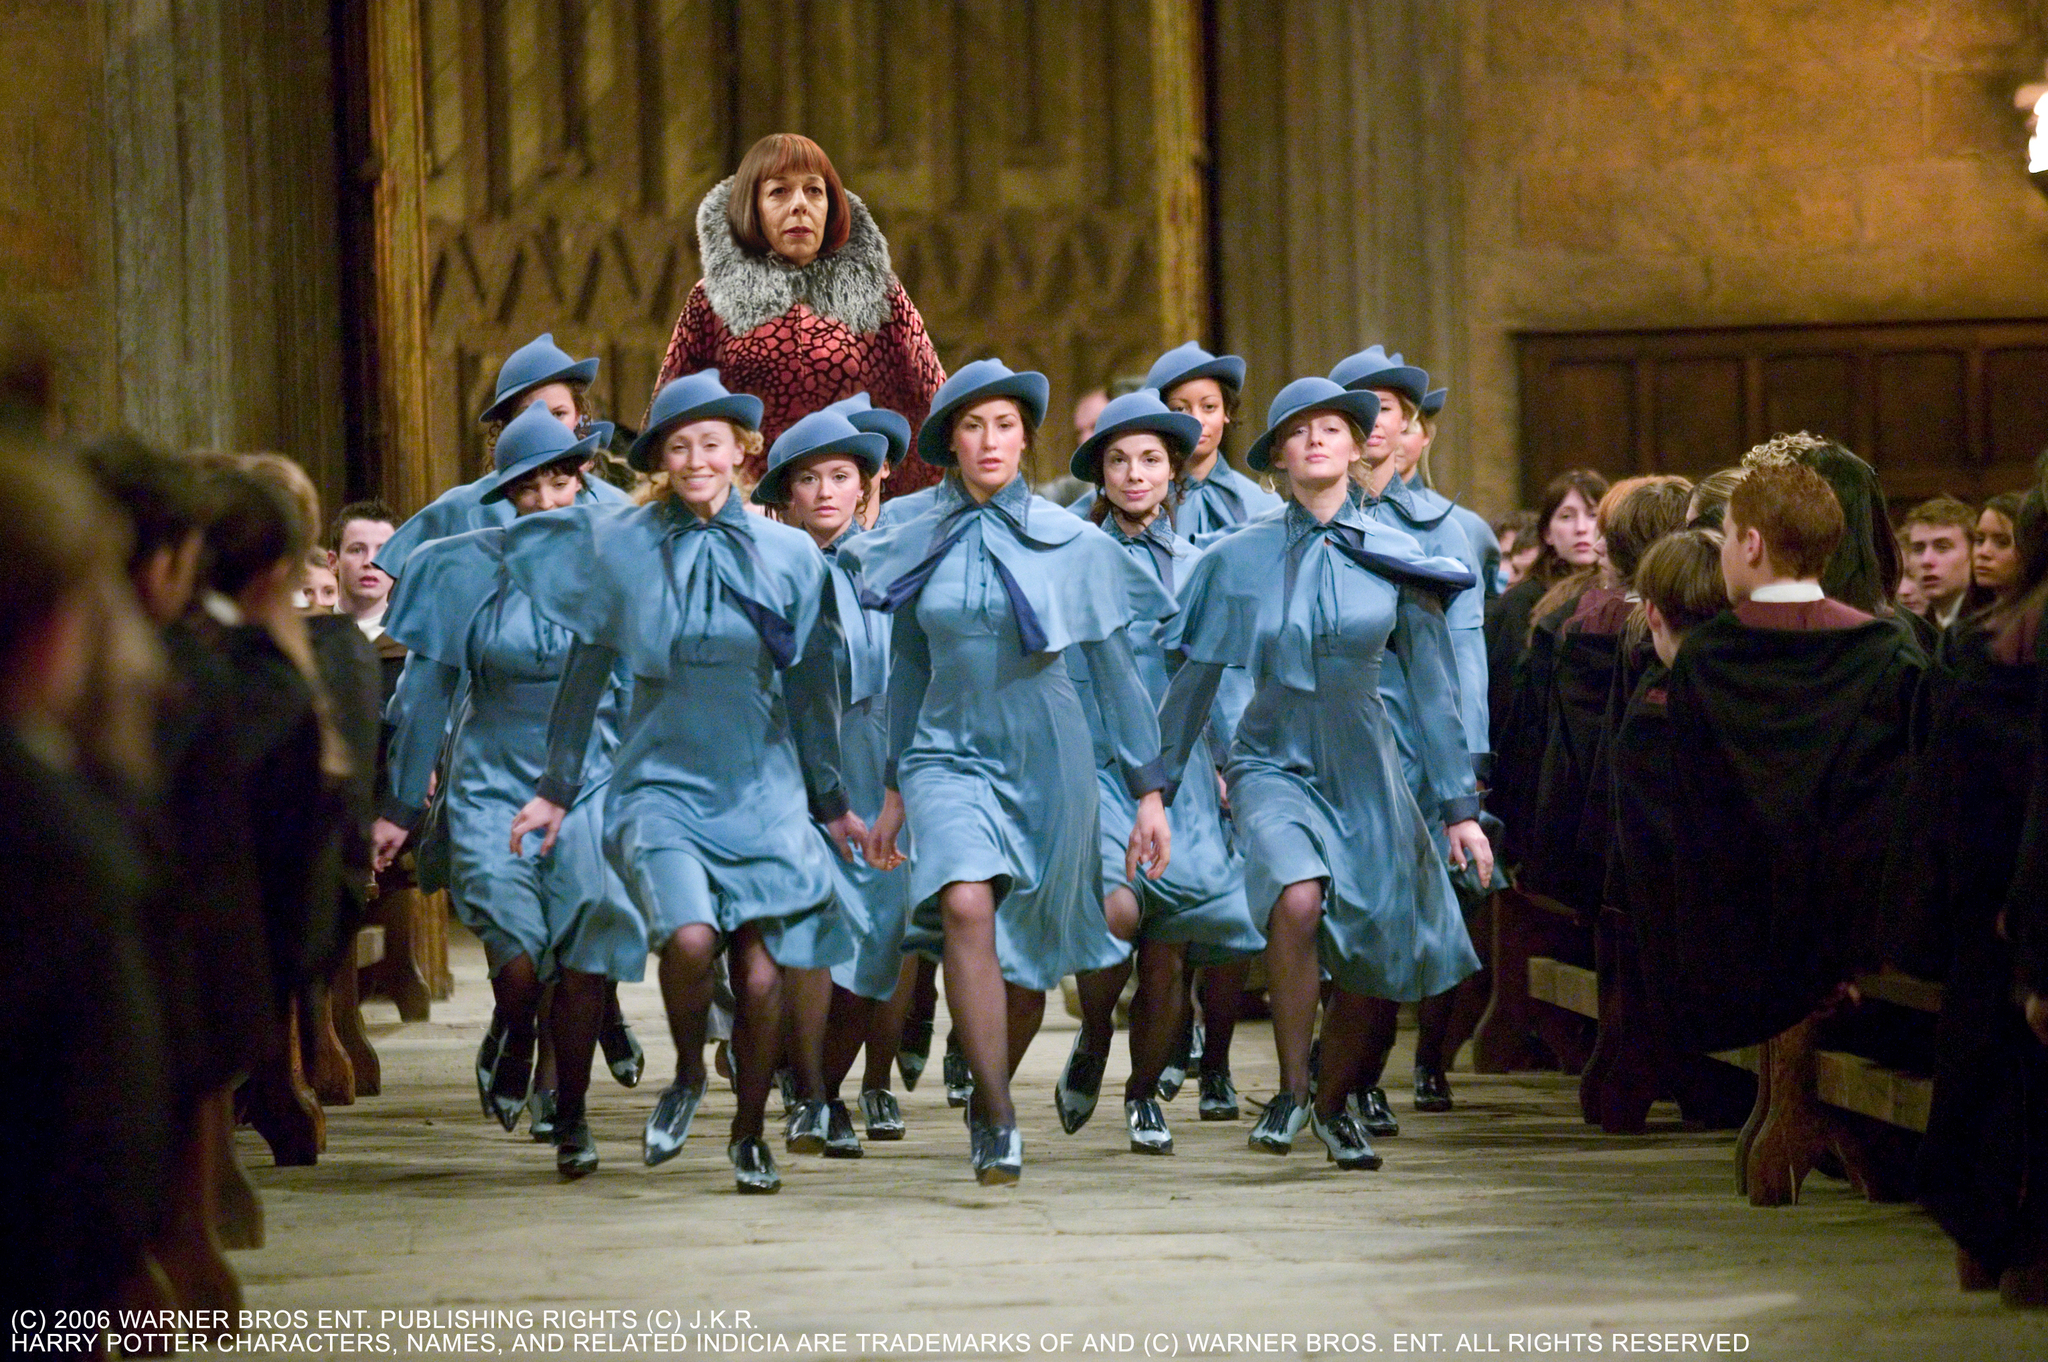 Frances de la Tour, Lucy Casson, Roxanne Ricketts, Simpson McKendry, Funda Önal, Janine Craig, Lucy-Anne Brooks, and Alexandra Craig in Harry Potter and the Goblet of Fire (2005)